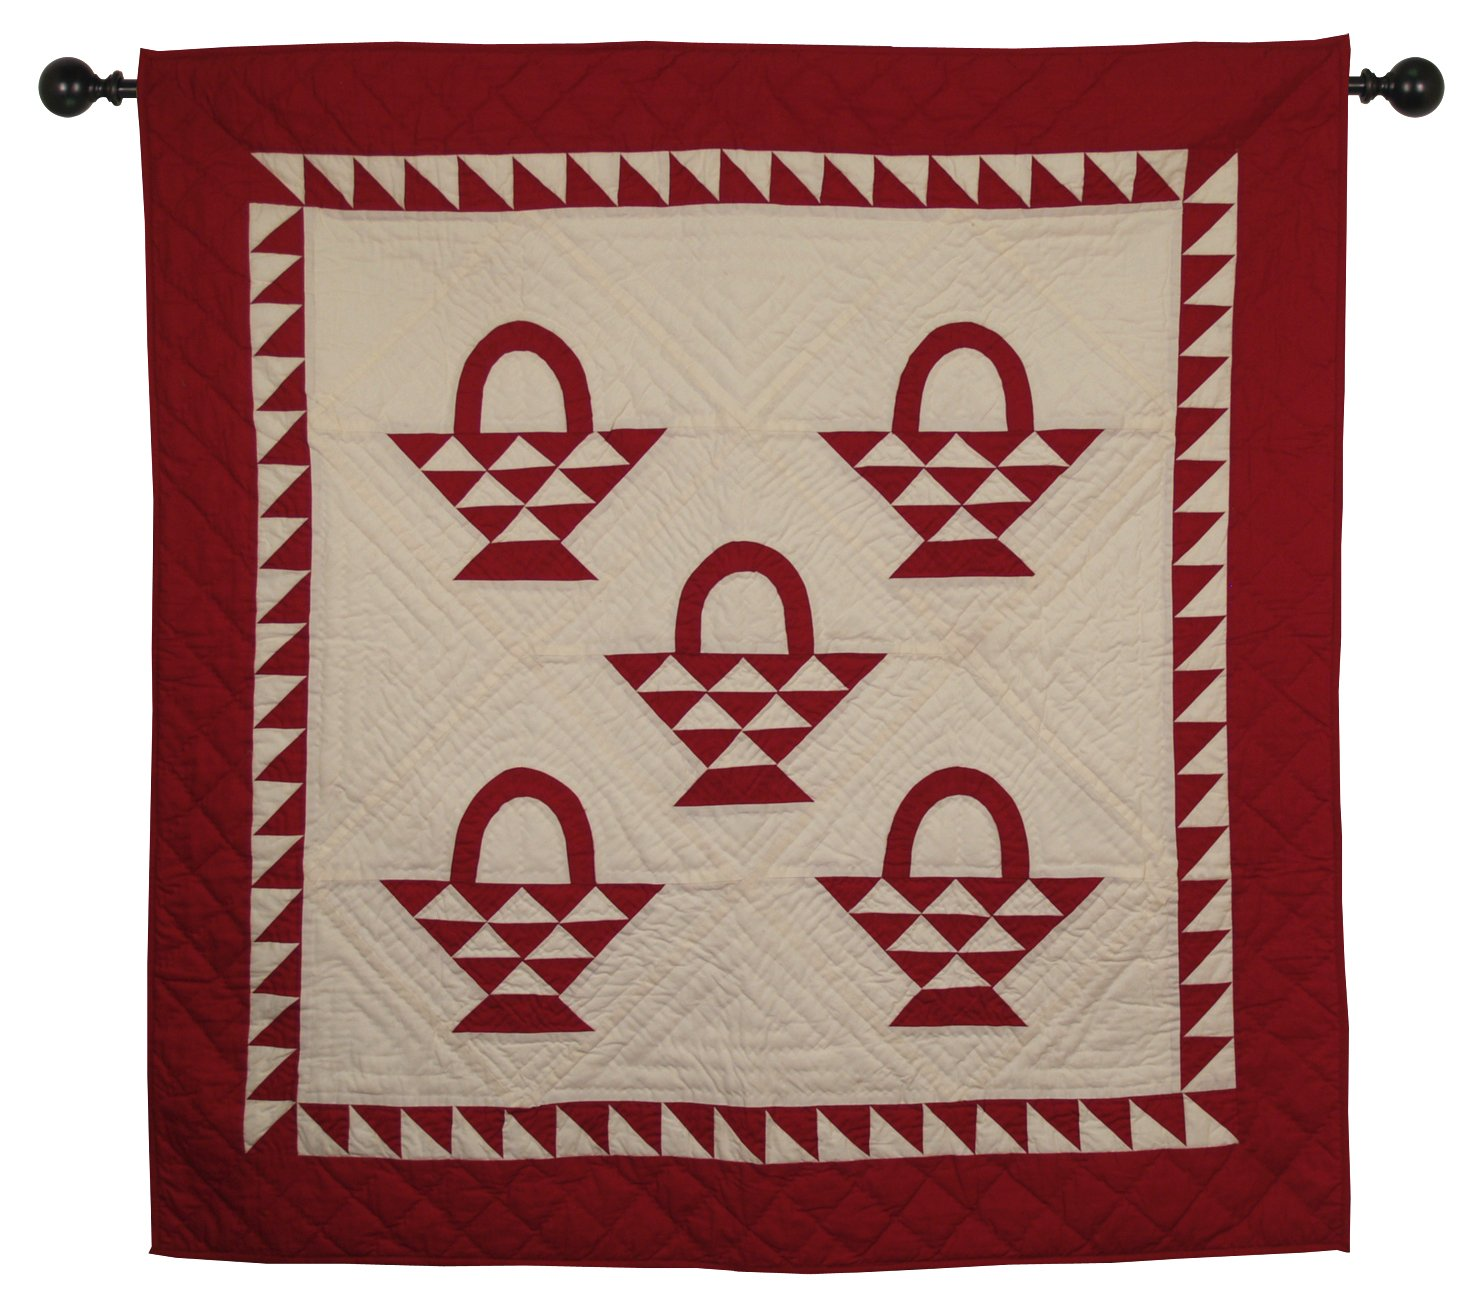 Basket Cranberry Red / Off-White Wall Hanging Quilt 44 Inches by 44 Inches 100% Cotton Handmade Hand Quilted Heirloom Quality